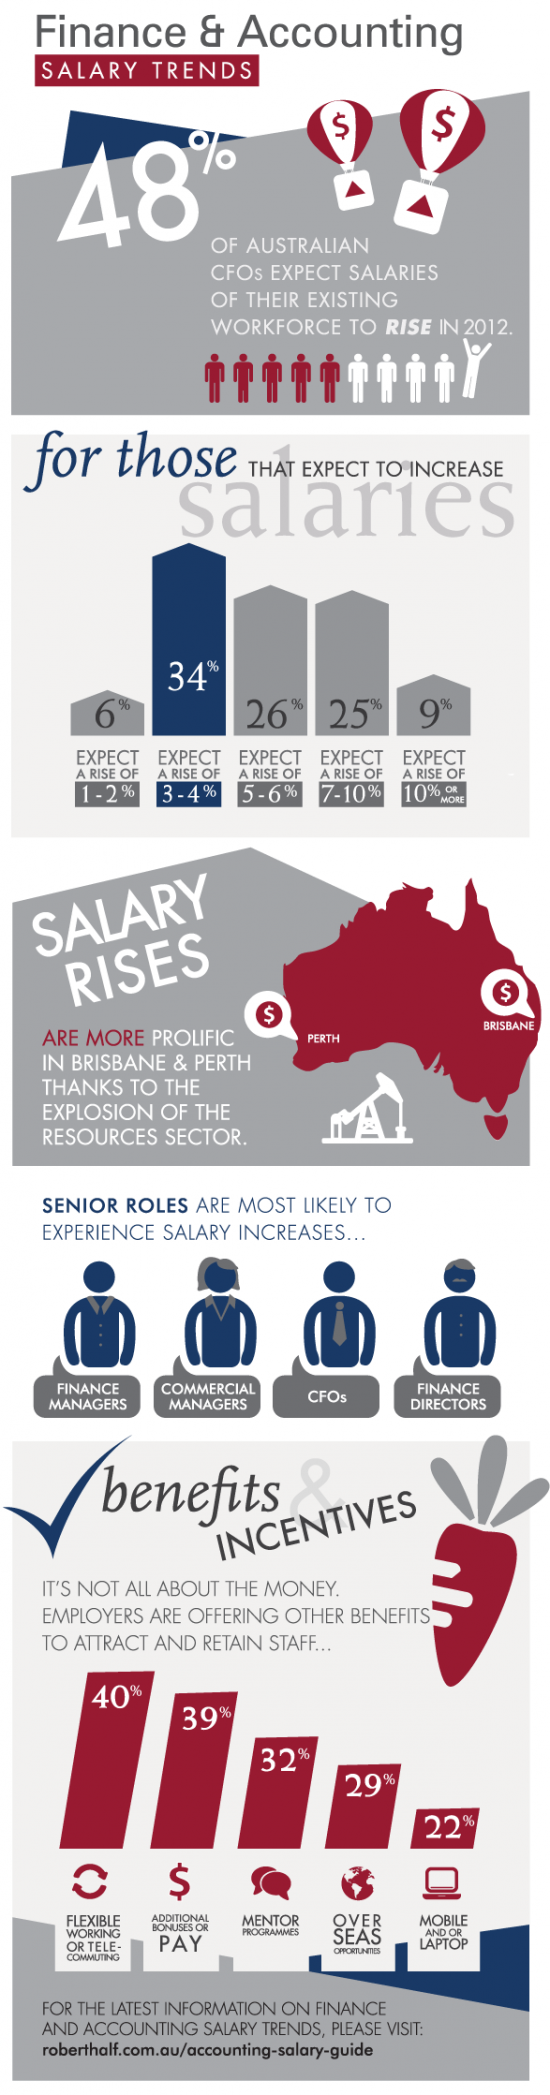 Key Accounting Salary Trends in Australia